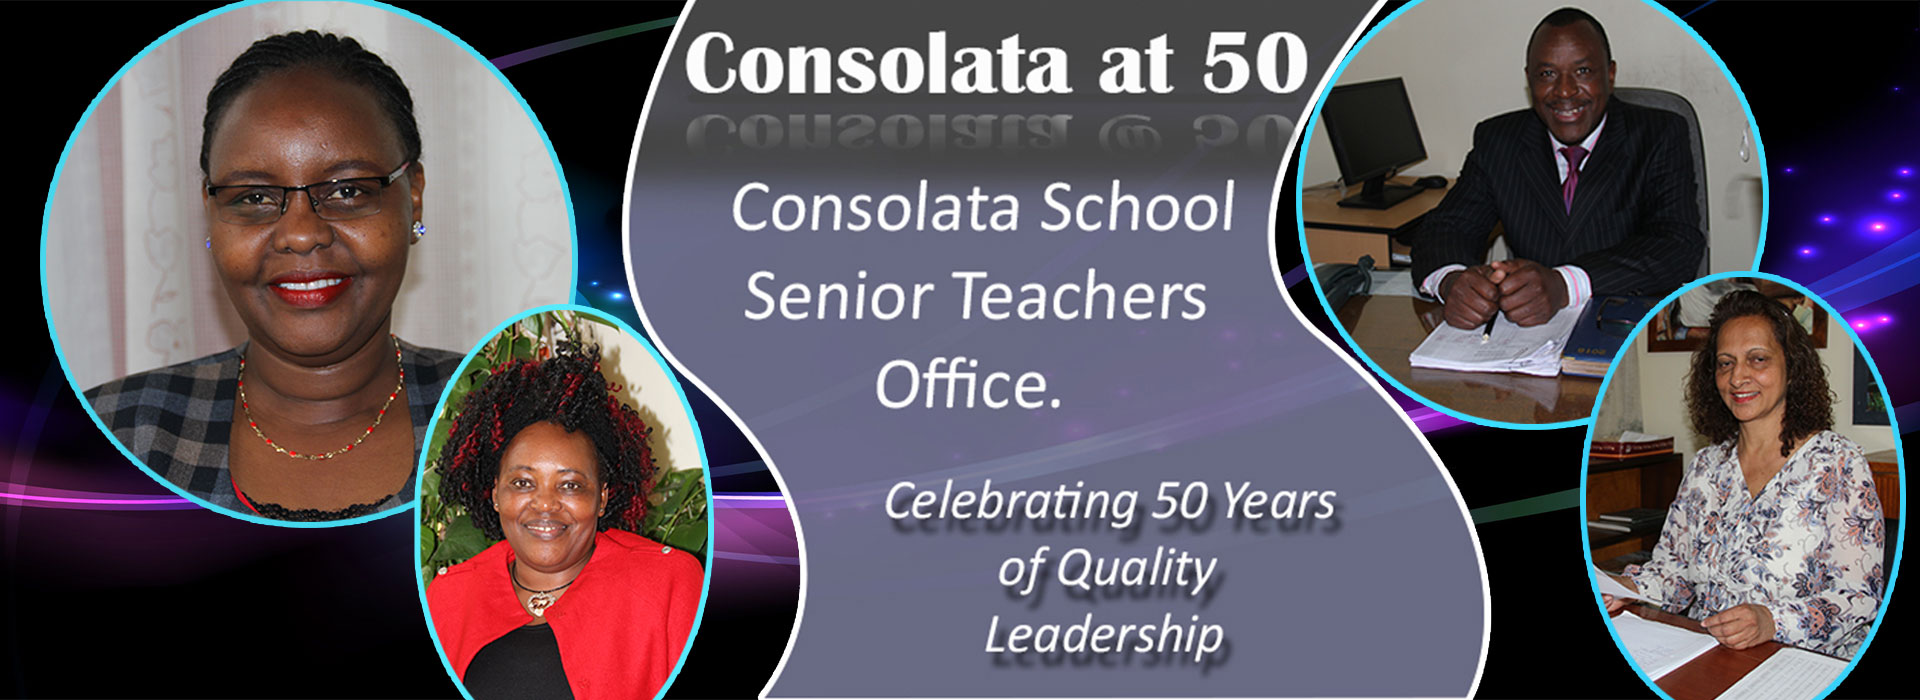 consolata-senior-teachers2